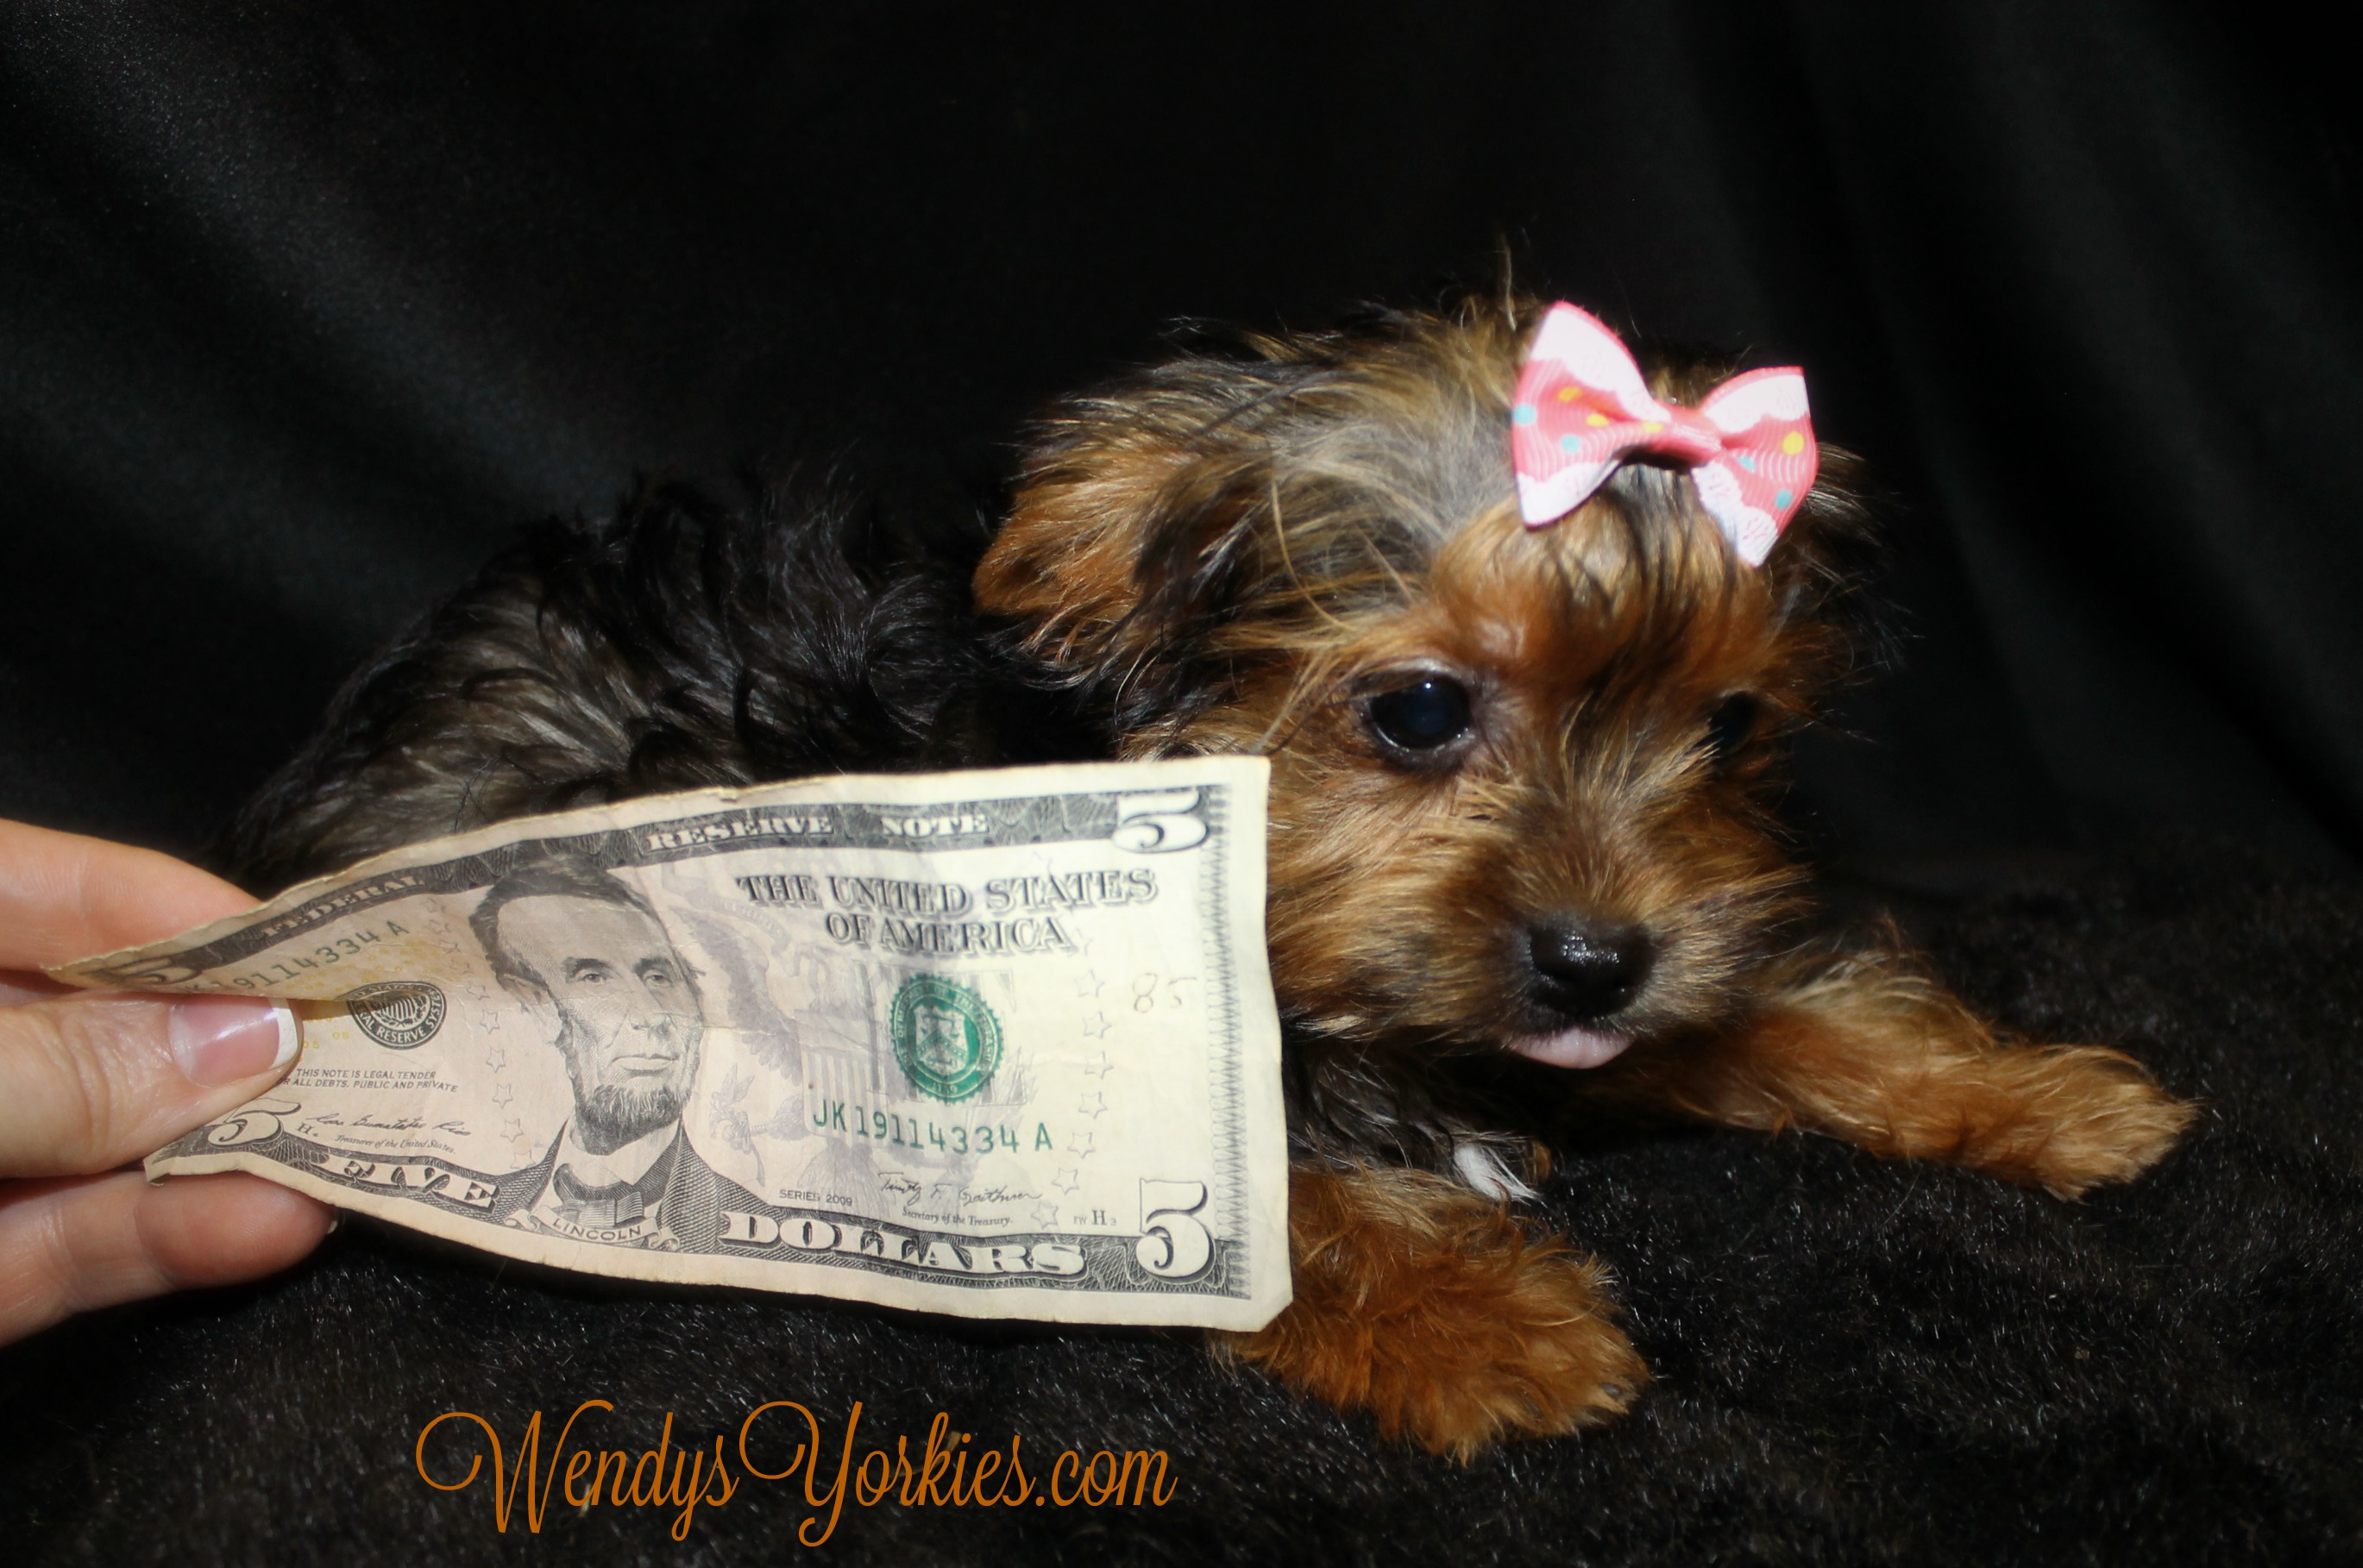 WendysYorkies, Teacup Female Yorkie for sale, Pheobebitty